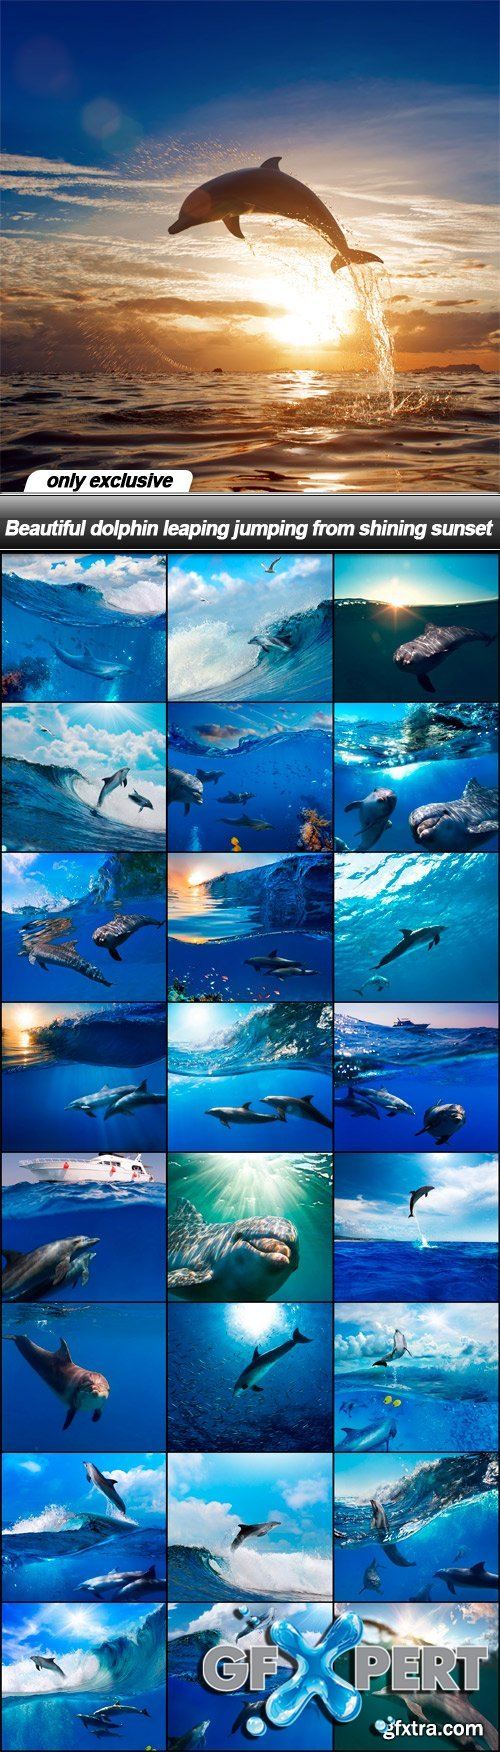 Beautiful dolphin leaping jumping from shining sunset - 25 UHQ JPEG